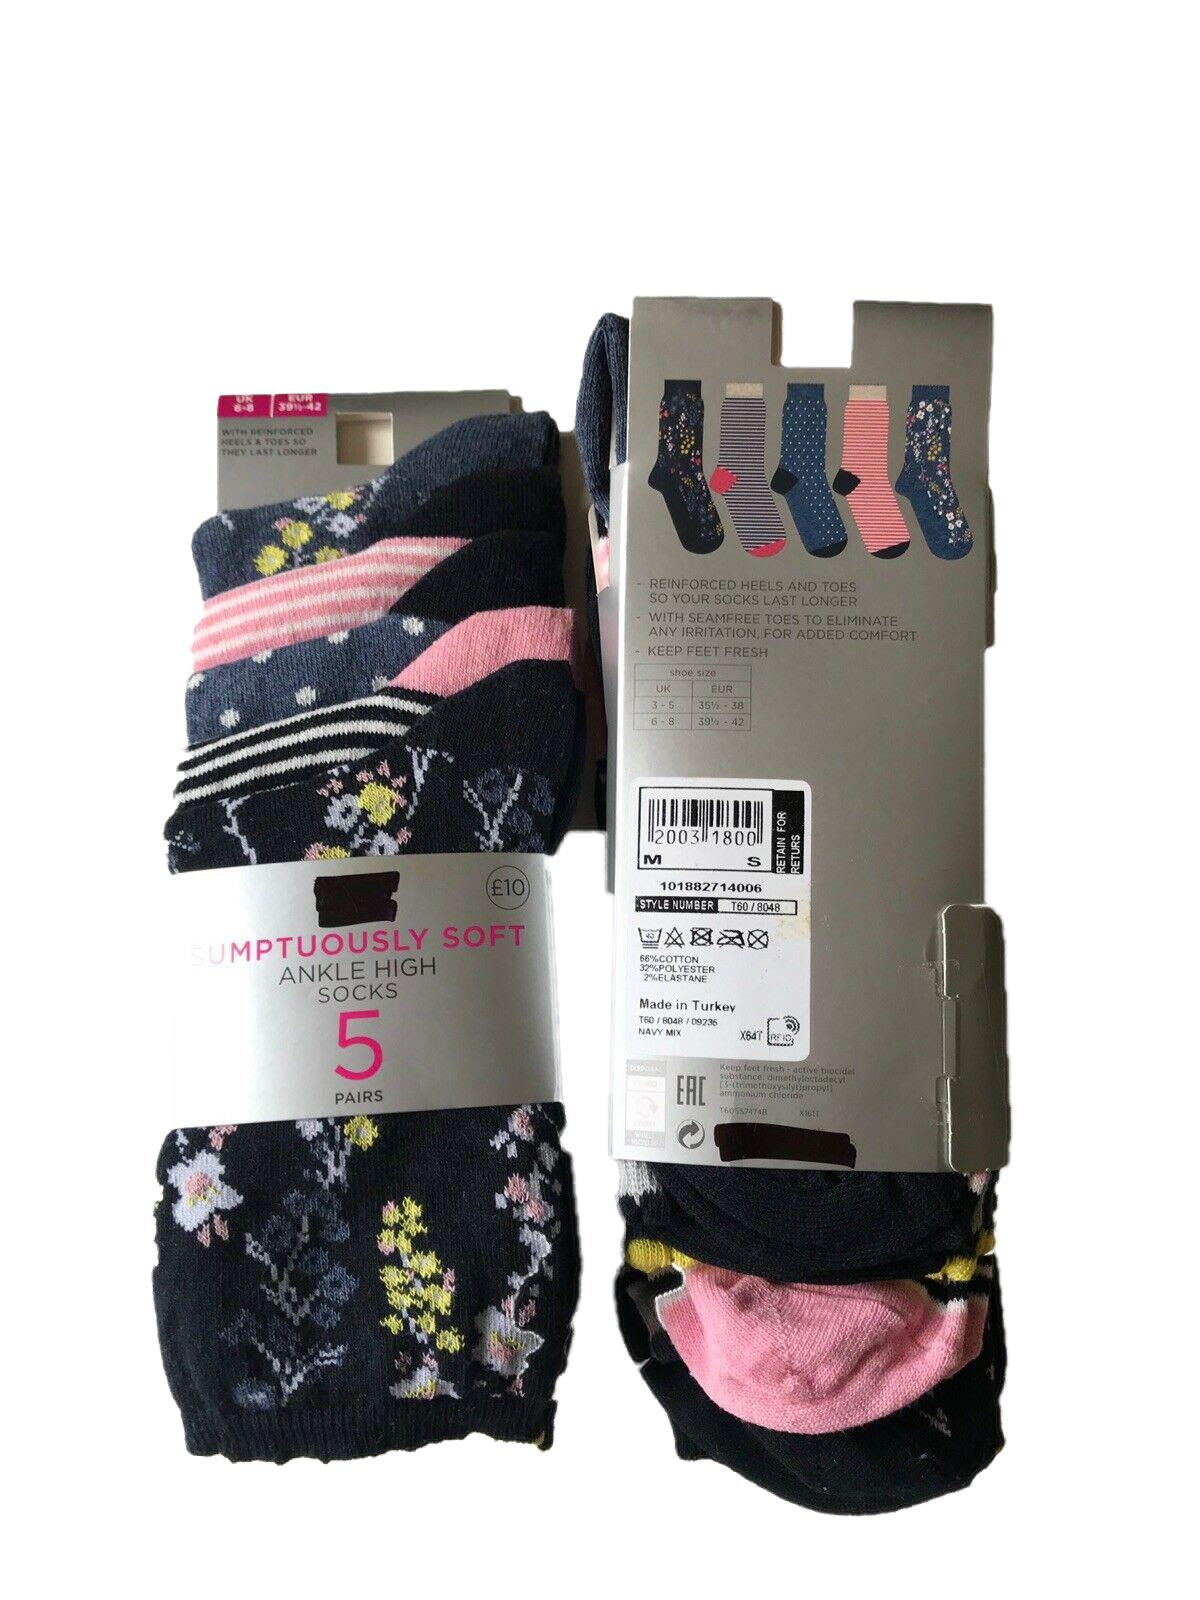 M/&S Ladies Cotton Rich ankle socks Size 6-8 Soft Touch Gentle Top Pack Of 5